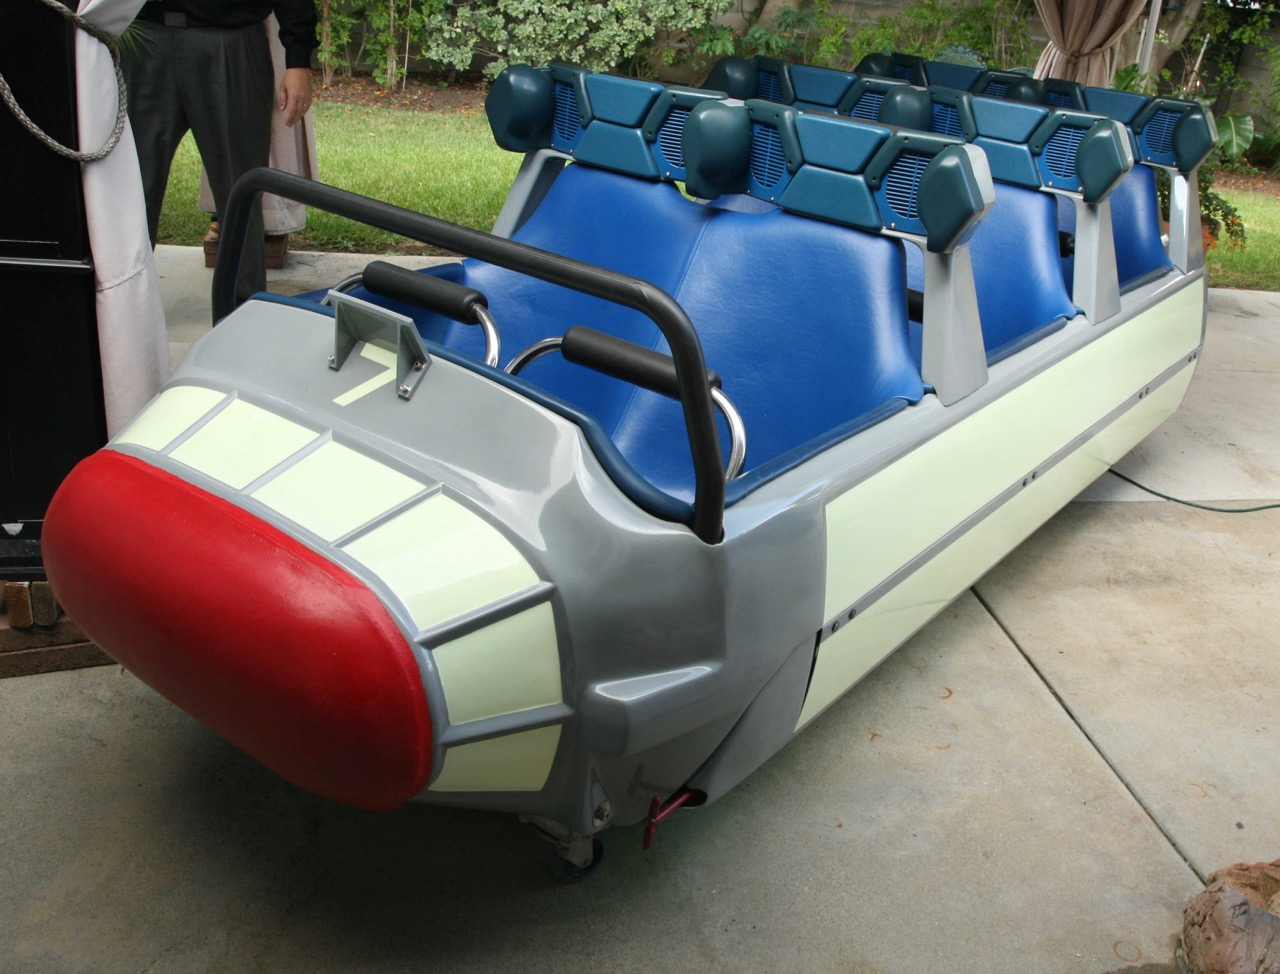 Space Mountain car has pre-auction estimated value of $50,000 to $60,000 | Van Eaton Galleries photos